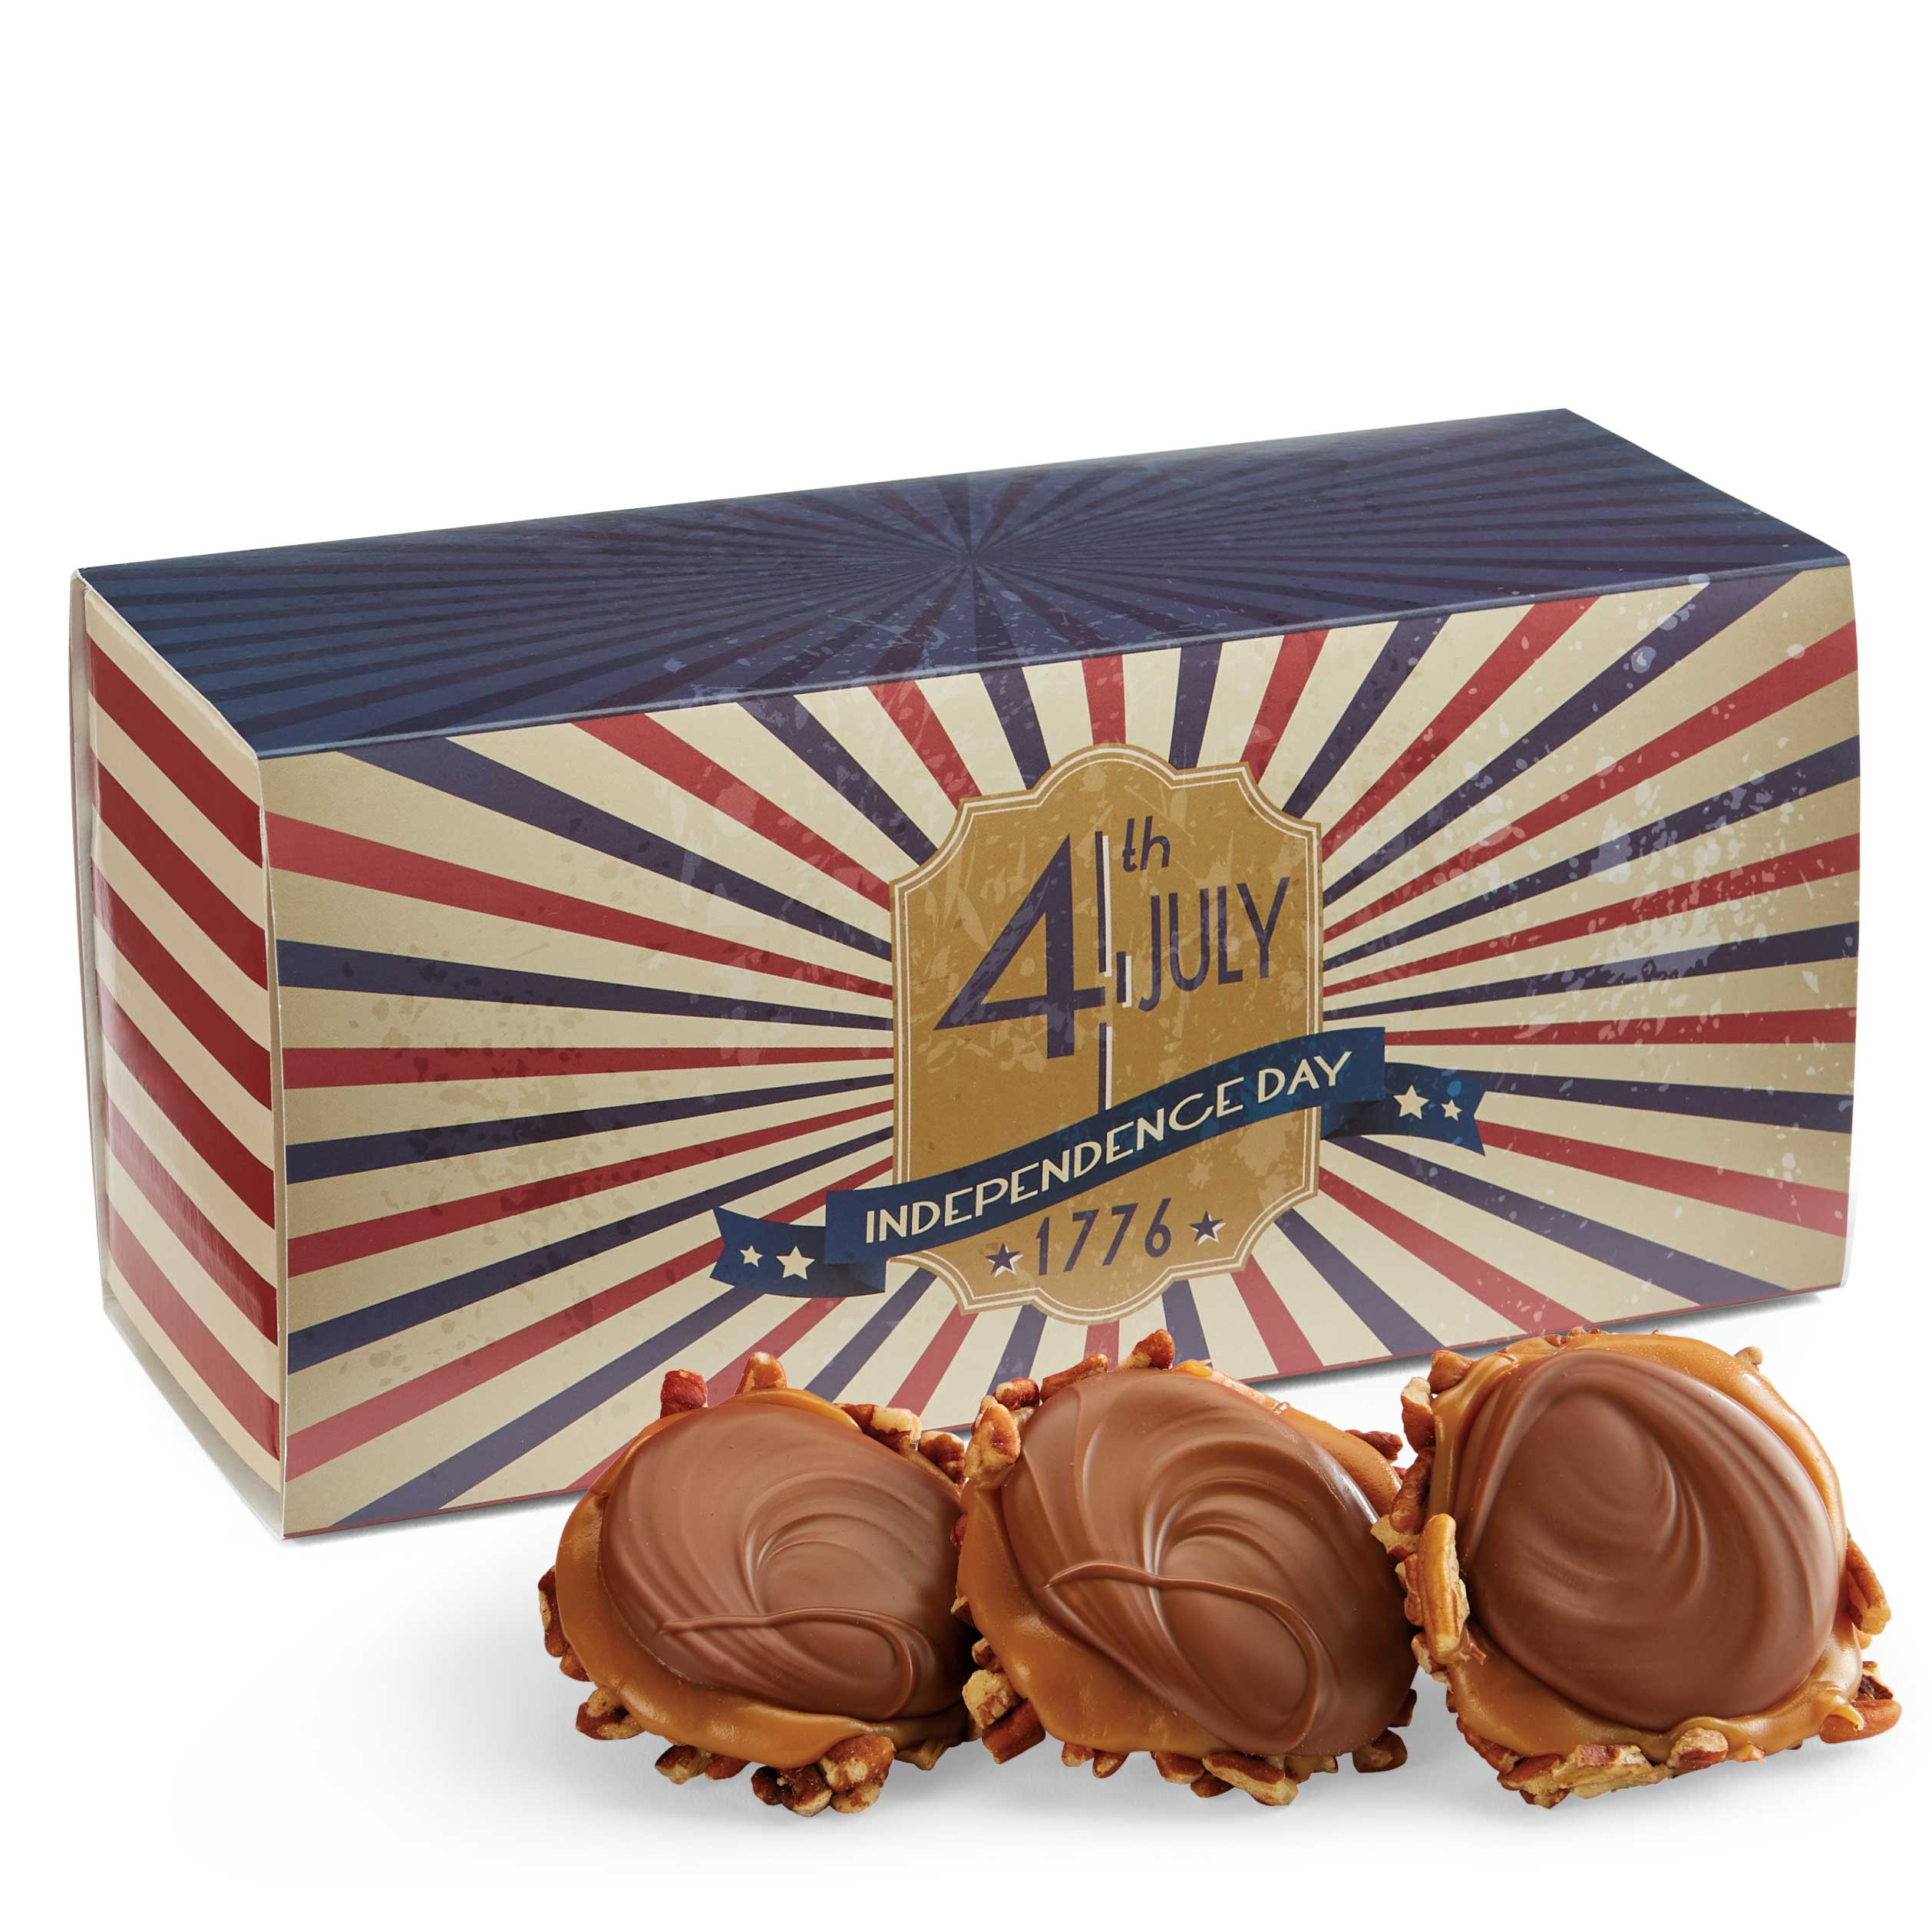 12 Piece Milk Chocolate Turtle Gophers in the 4th of July Gift Box